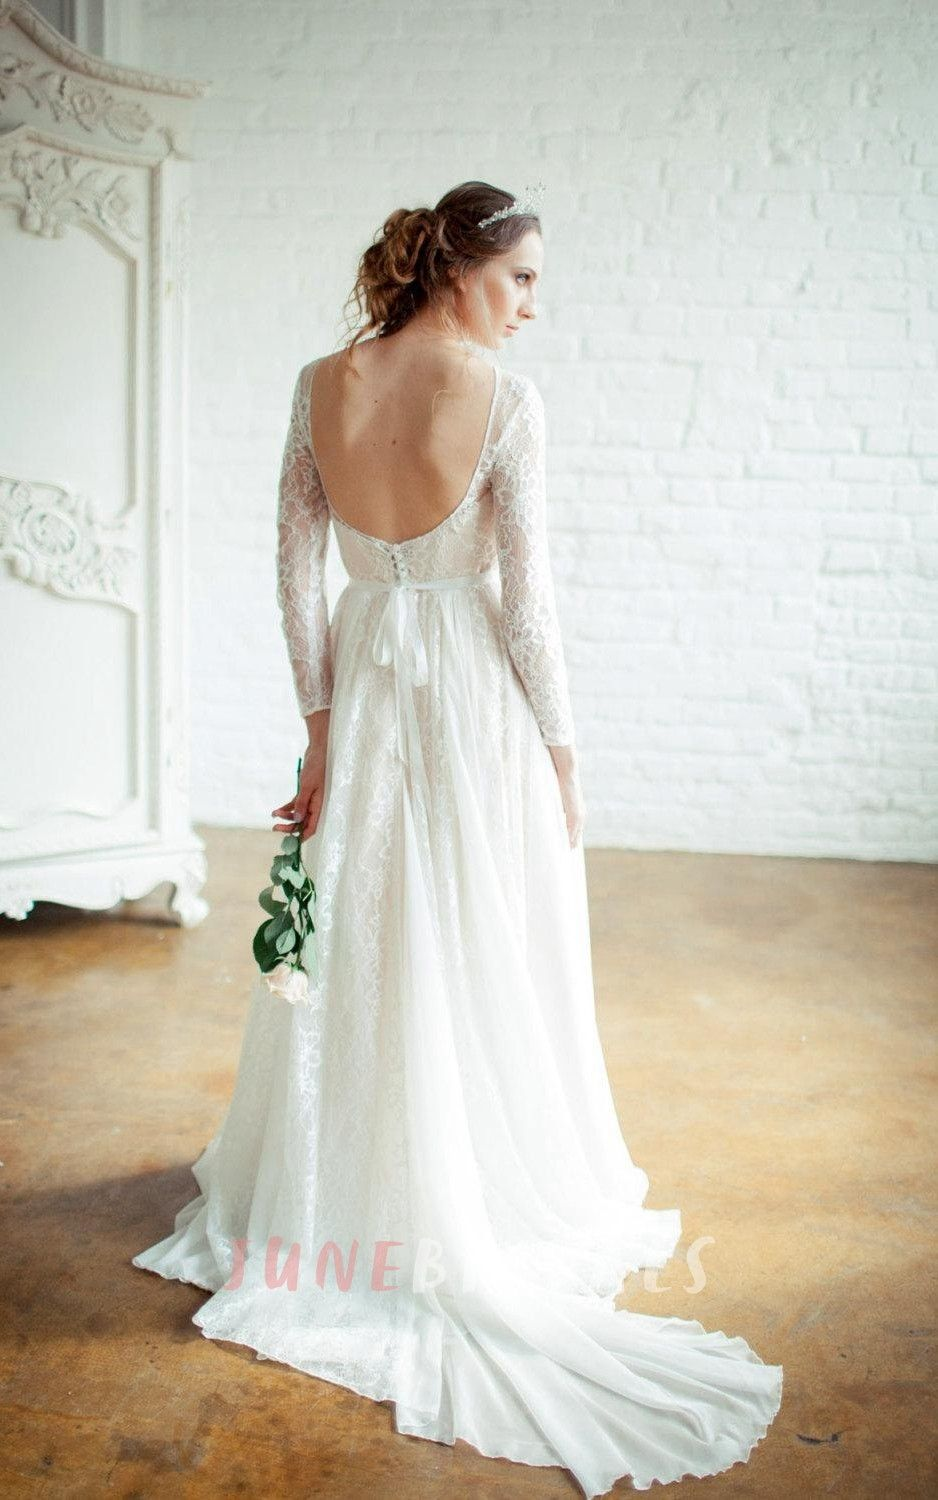 Kora High Necked Wedding Open Back Dress